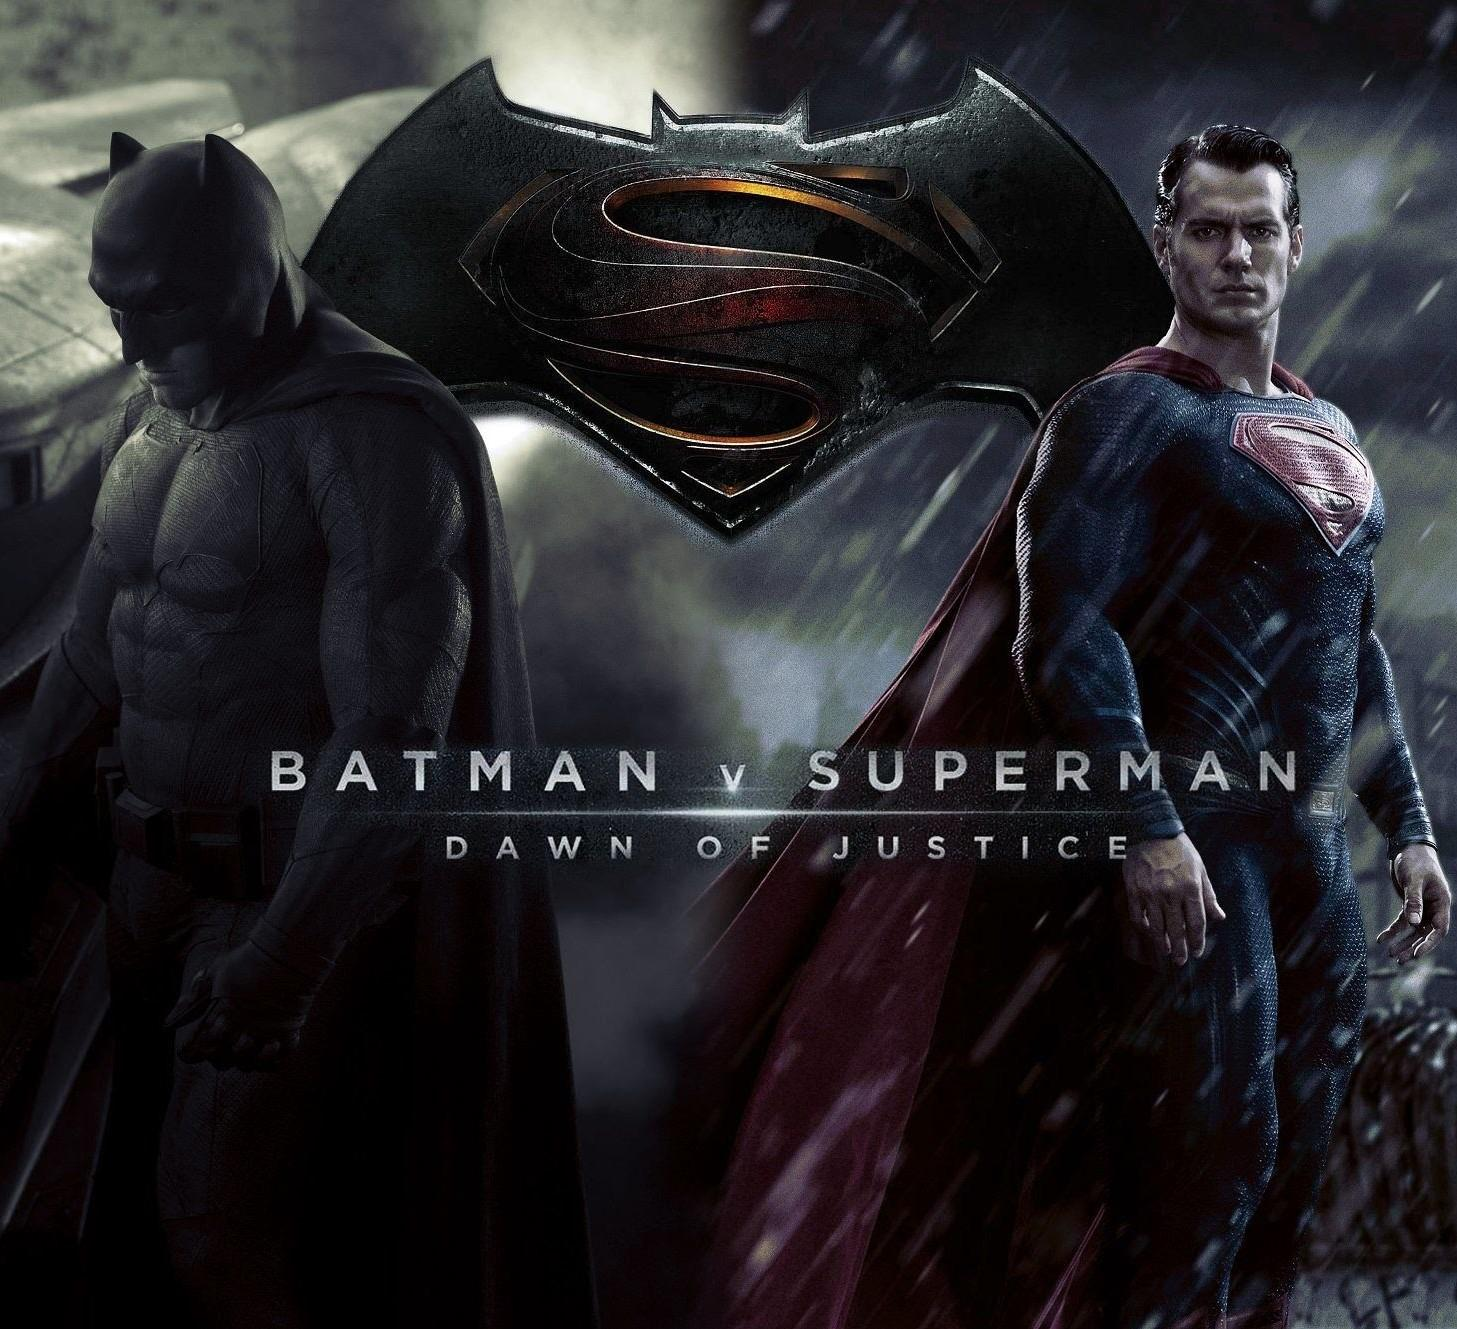 Here is the poster for the long awaited movie featuring Ben Affleck as Batman and Henry Cavill as Superman.